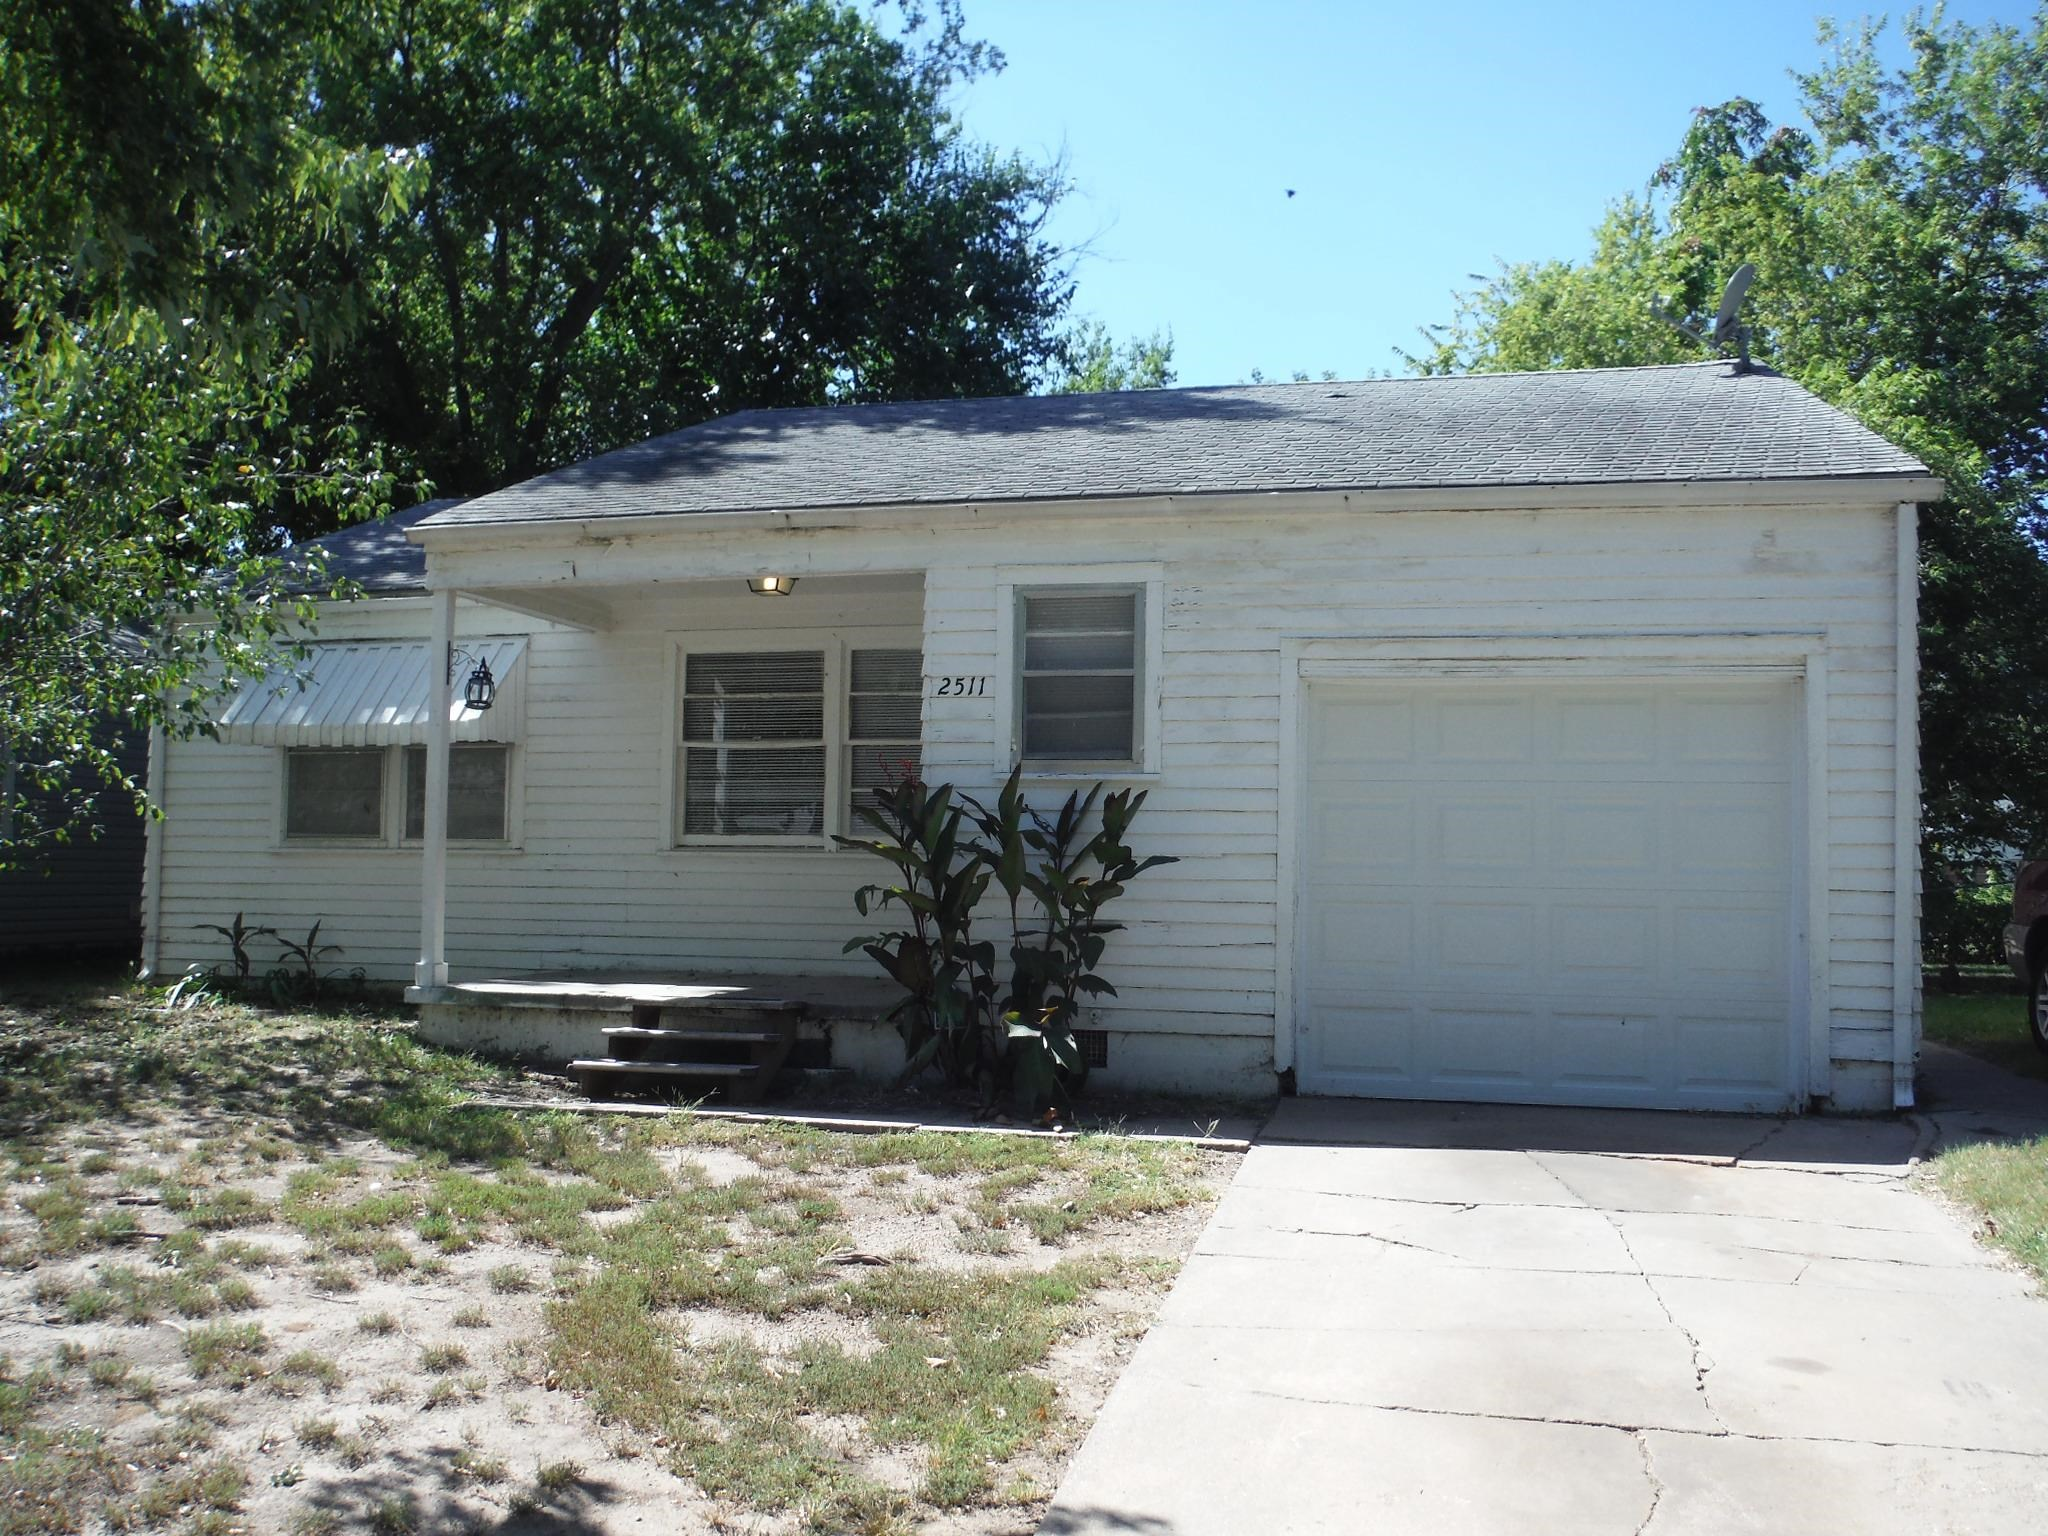 3 bedroom home in south Wichita. The kitchen appliances will remain with the home. Partially fenced